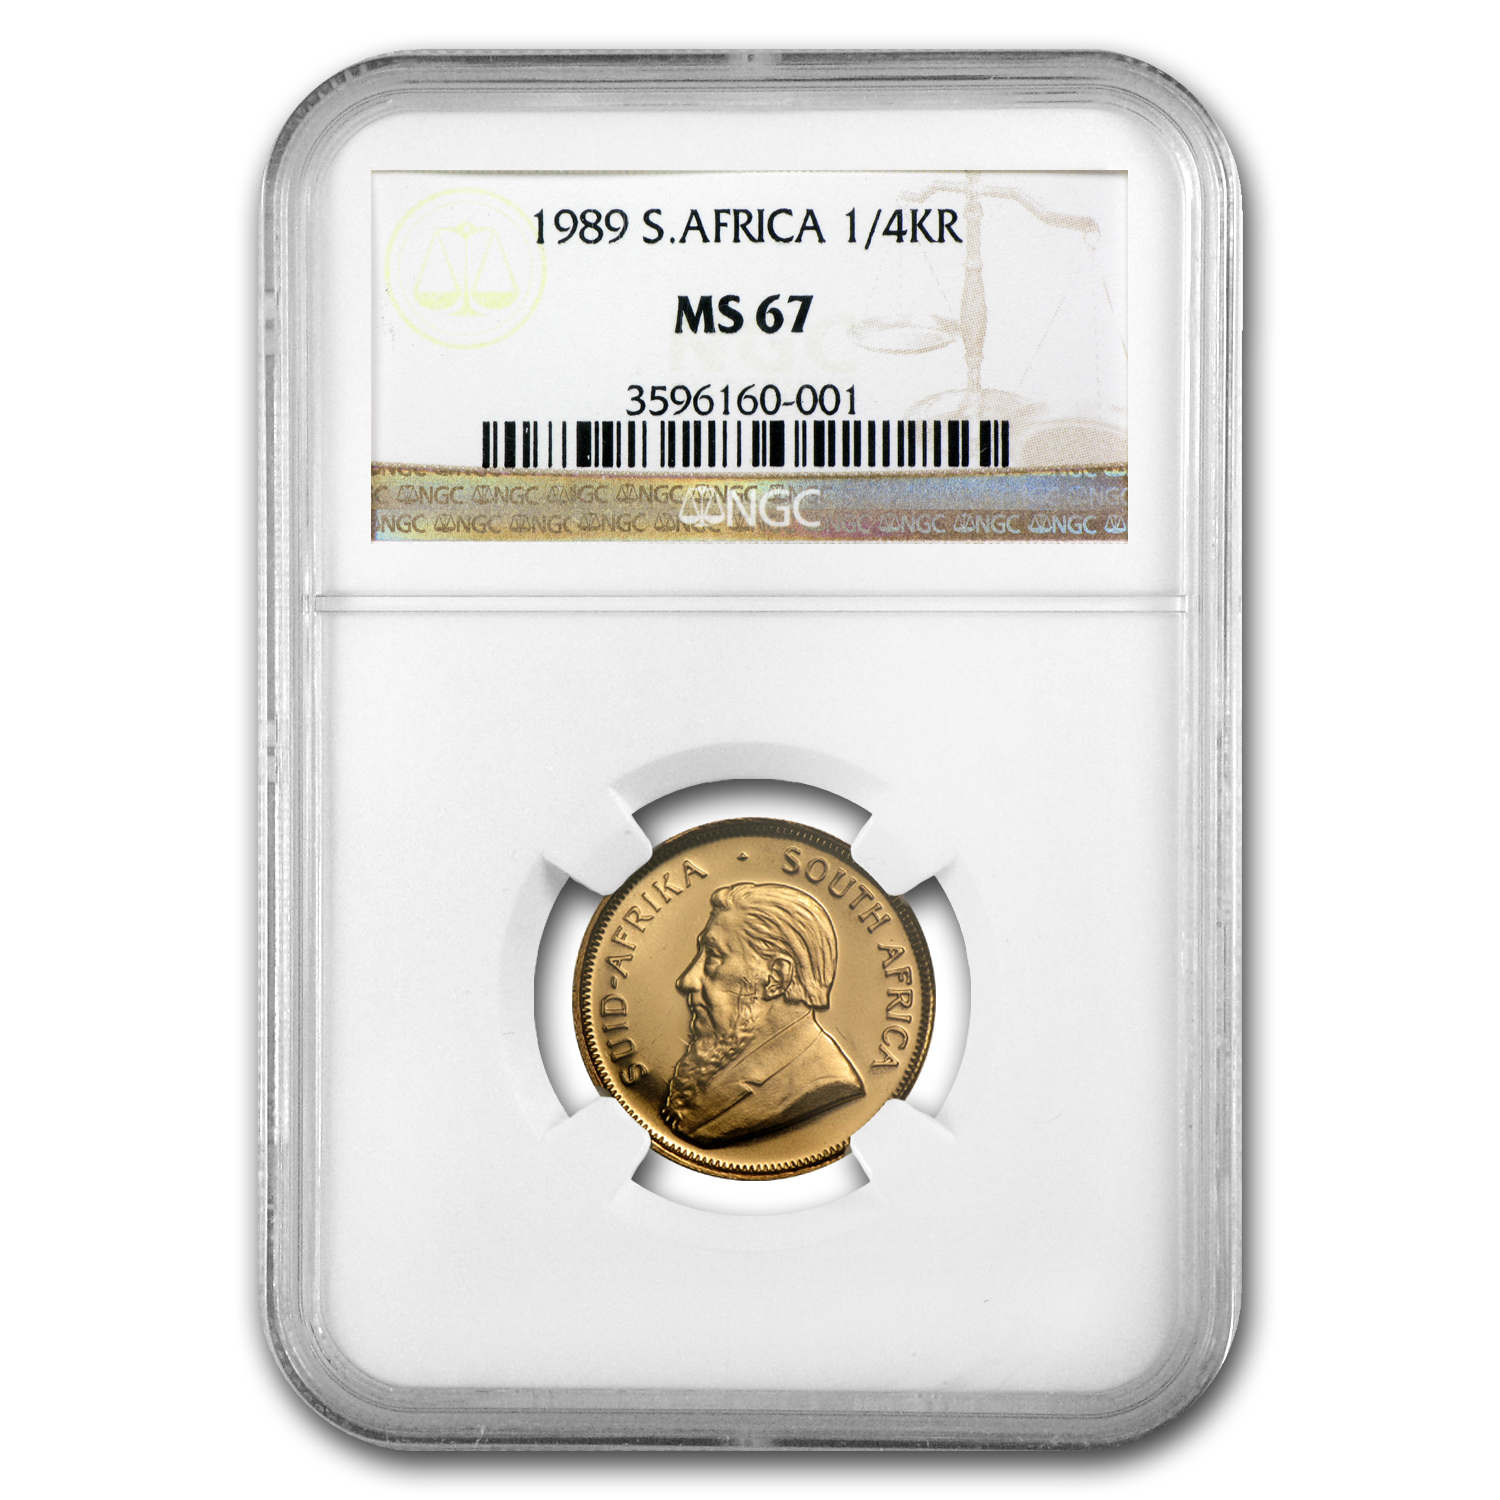 1989 South Africa 1/4 oz Gold Krugerrand MS-67 NGC